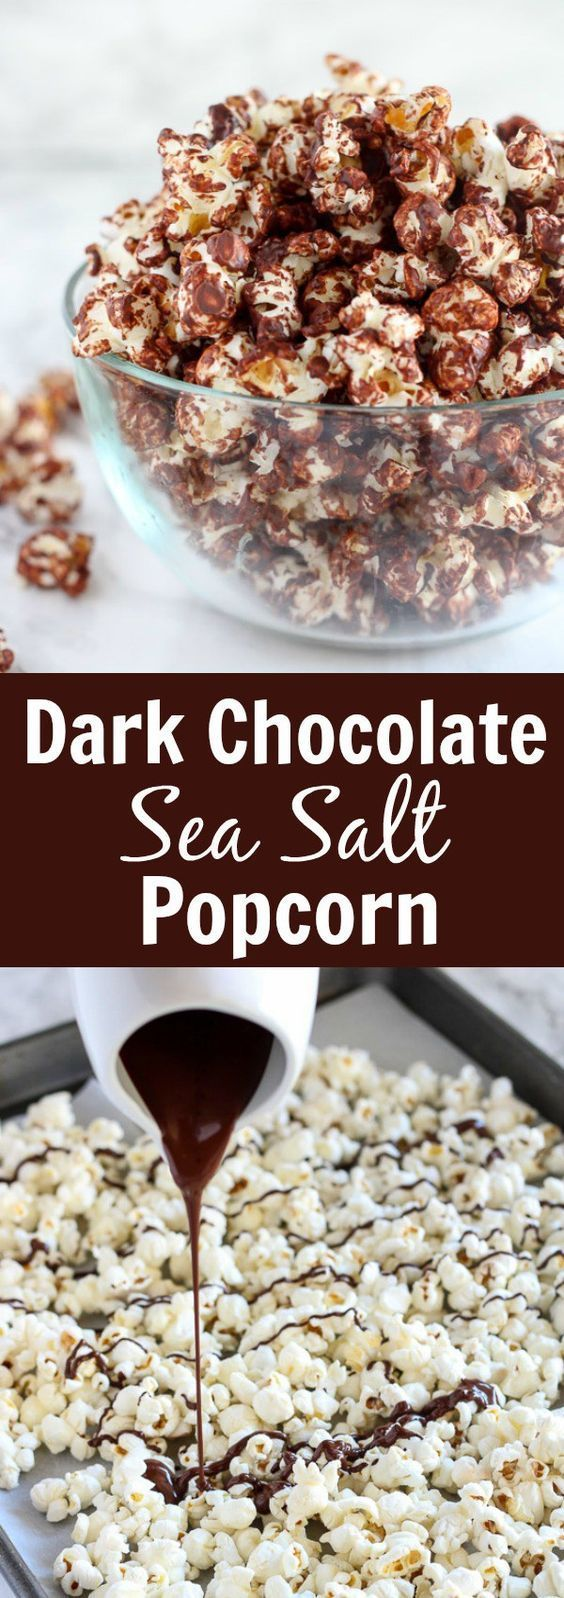 Dark Chocolate Sea Salt Popcorn - A healthy sweet and salty snack made of popcorn tossed with melted dark chocolate and sprinkled with sea salt. Part dessert, part snack - completely delicious!